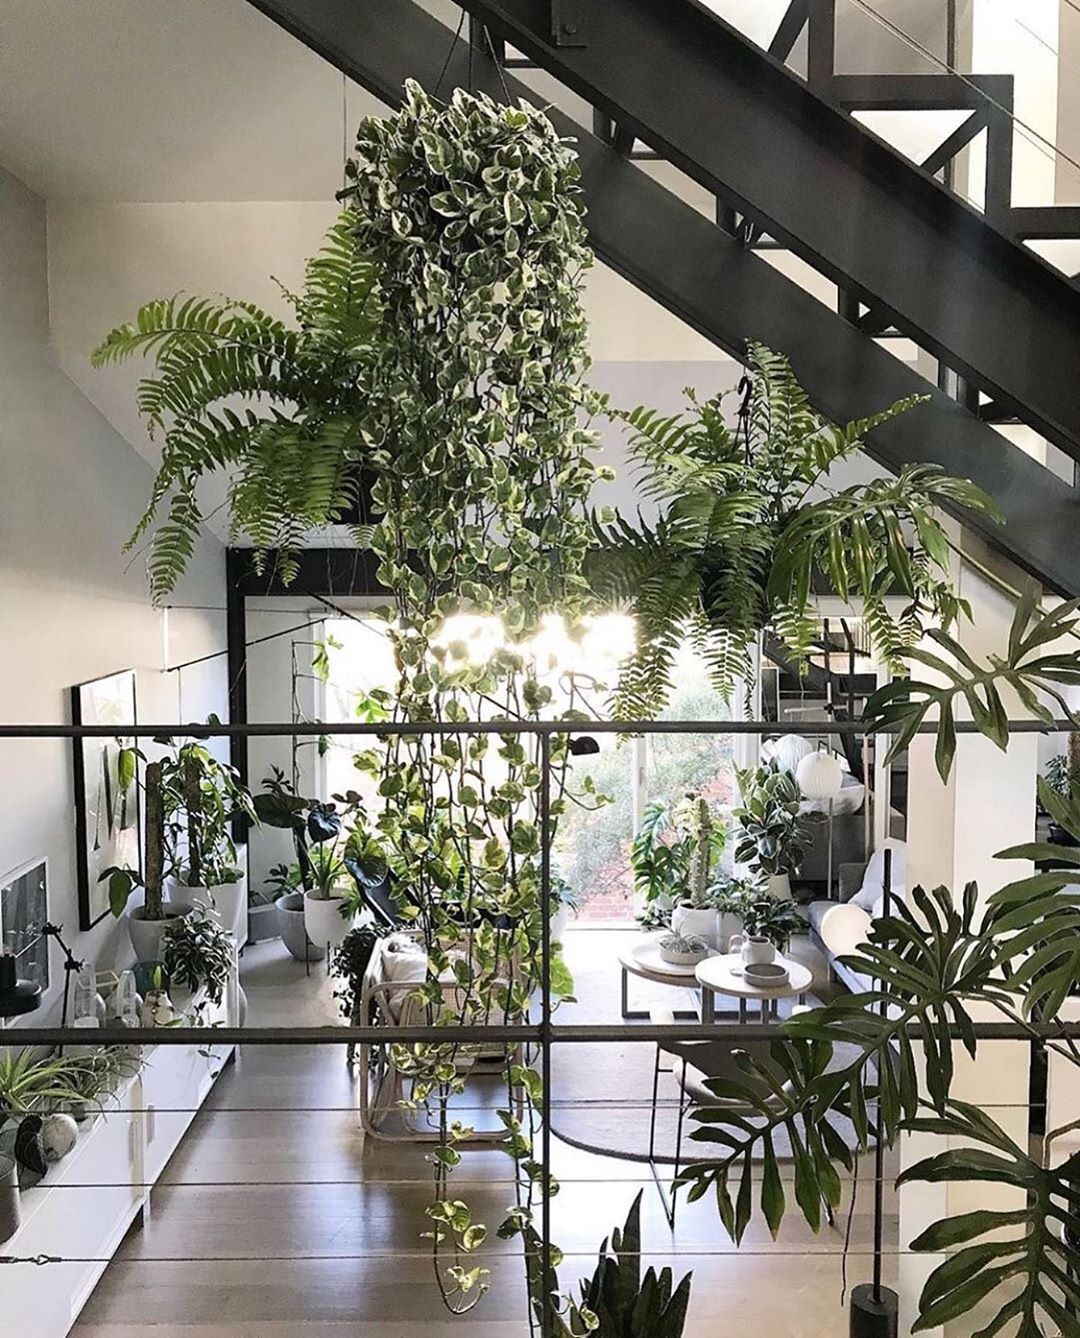 Design Your Workplace To Become An Urban Jungle Promote Healthy Working Conditions That Relieve Employees Of Stress A Indoor Plants Plants Small Indoor Plants